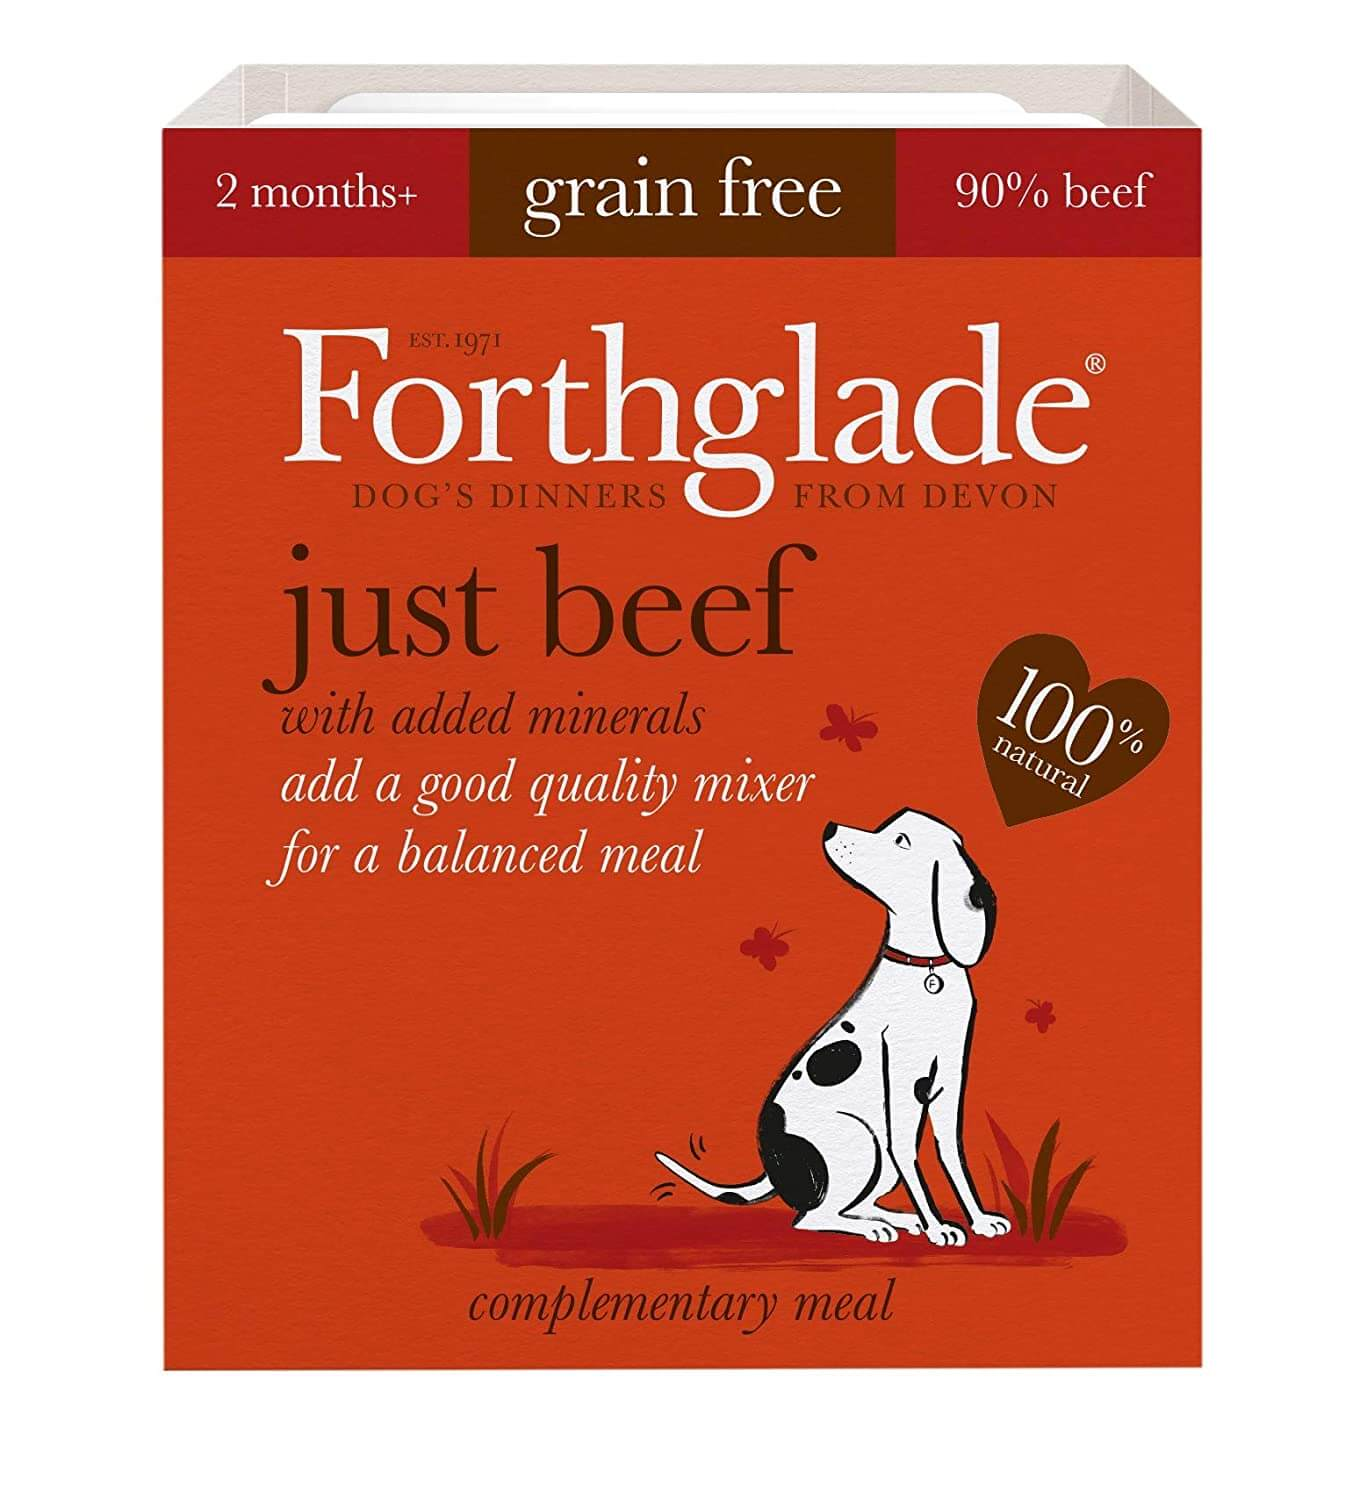 Forthglade dog food image